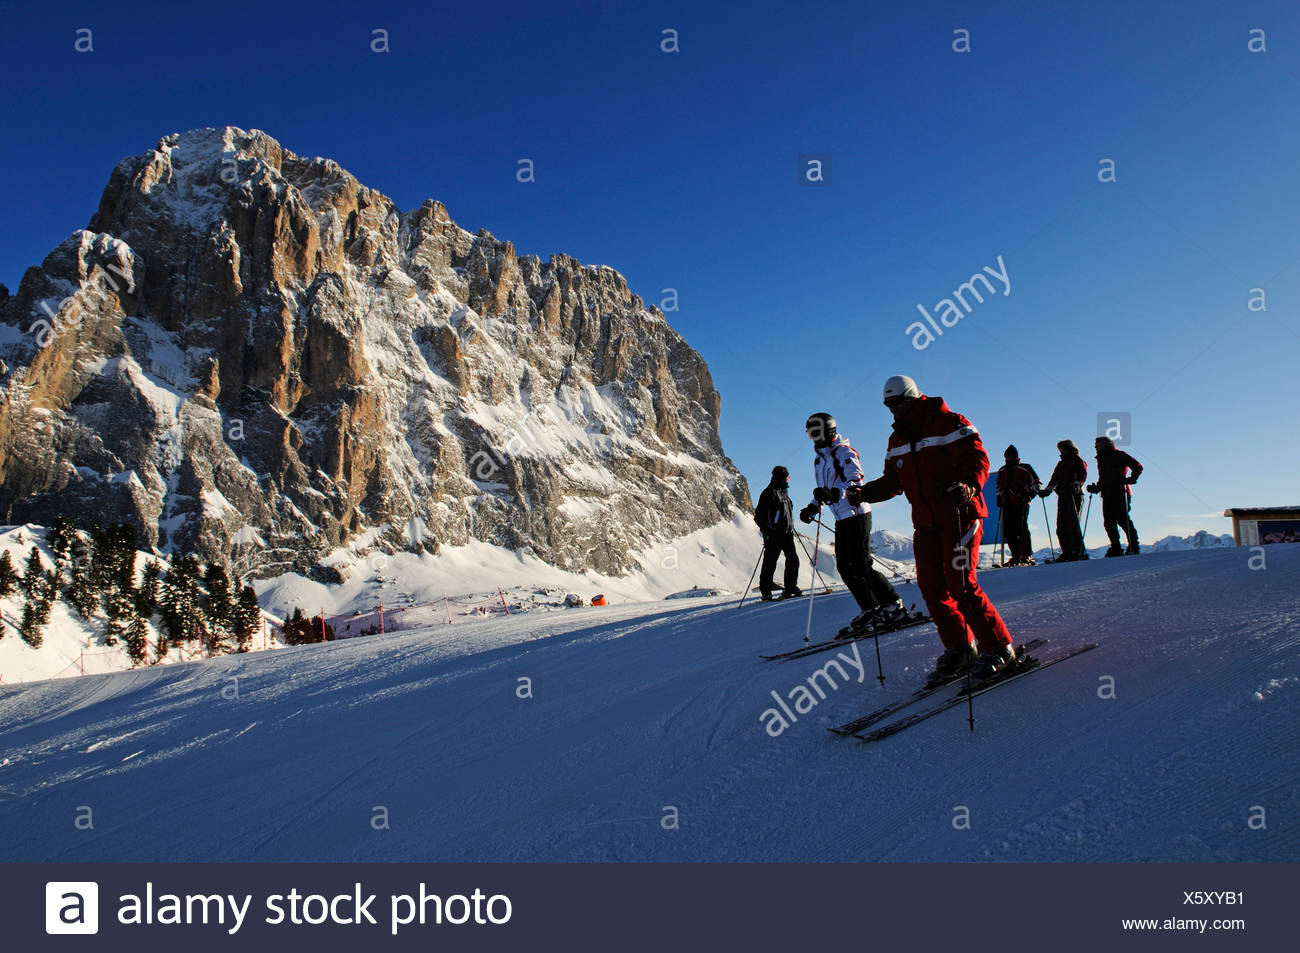 Ski piste at Santa Cristina, Selva, Langkofel mountain, Sella Ronda, Val Gardena, South Tyrol, Italy, Europe - Stock Image